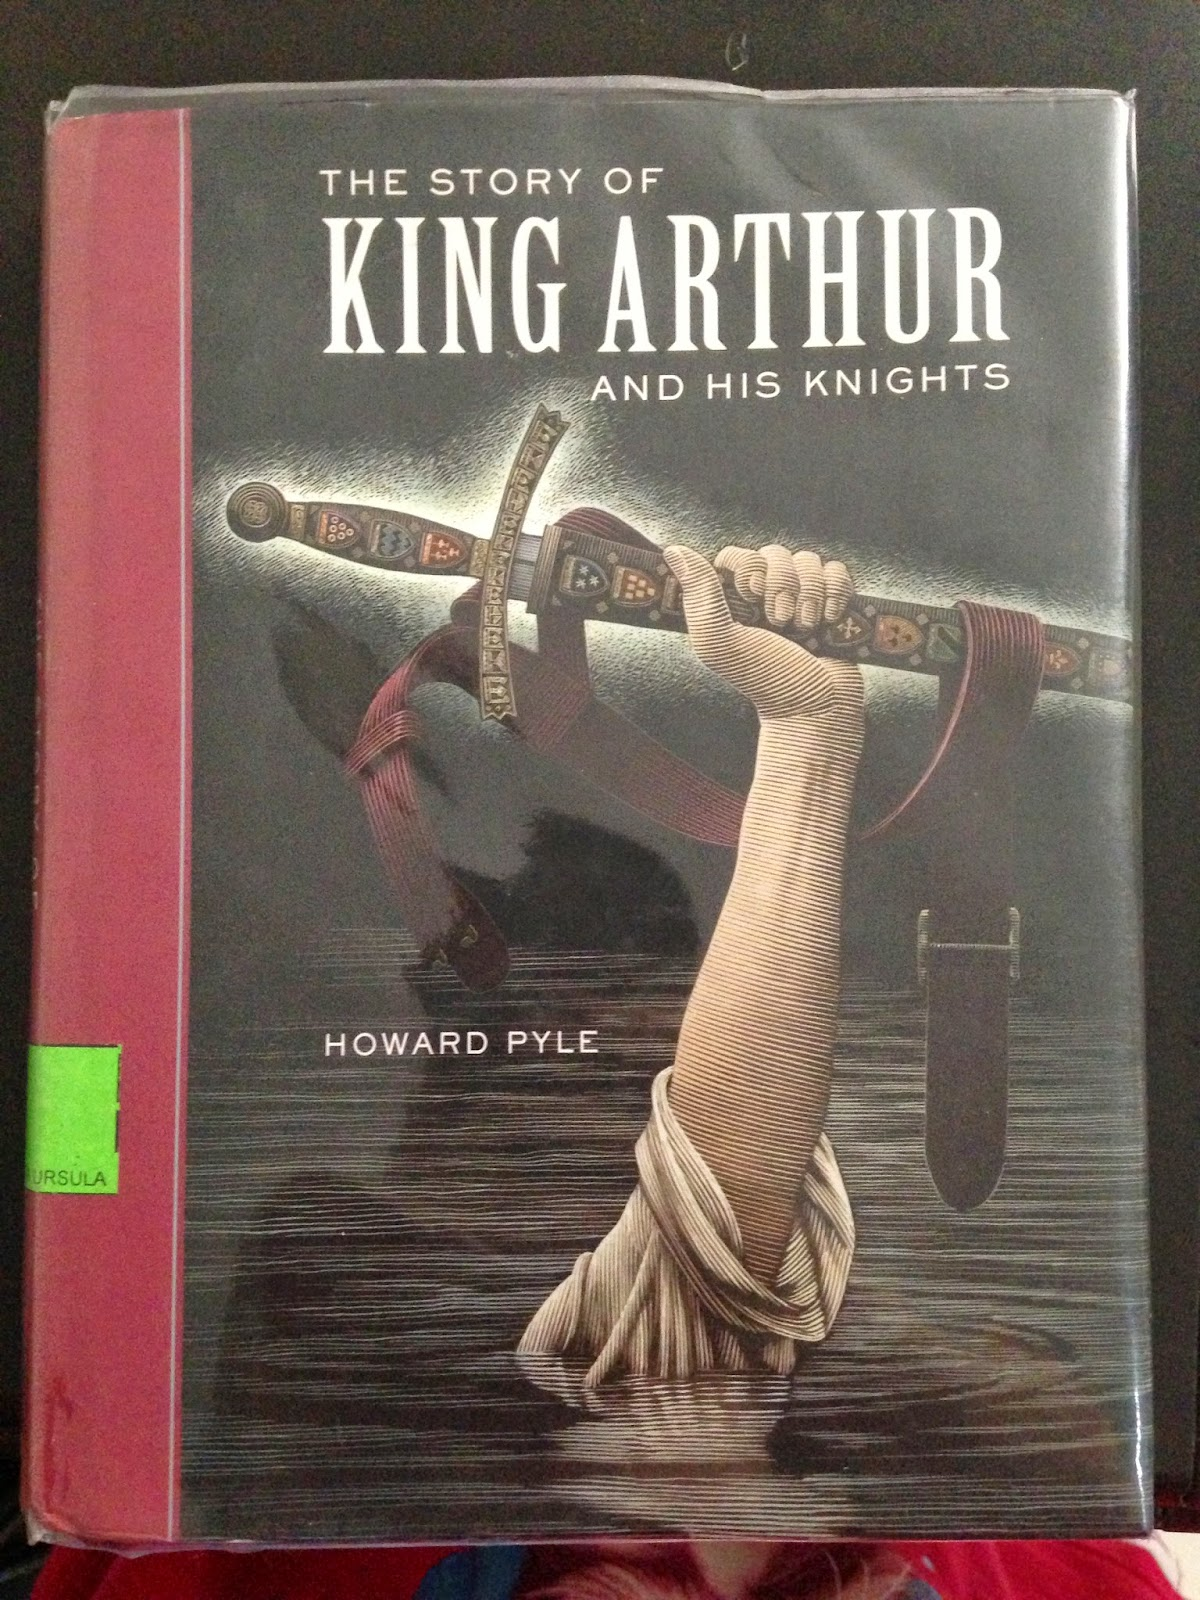 flame o minggo moral value the story of king arthur and his knight moral value the story of king arthur and his knight